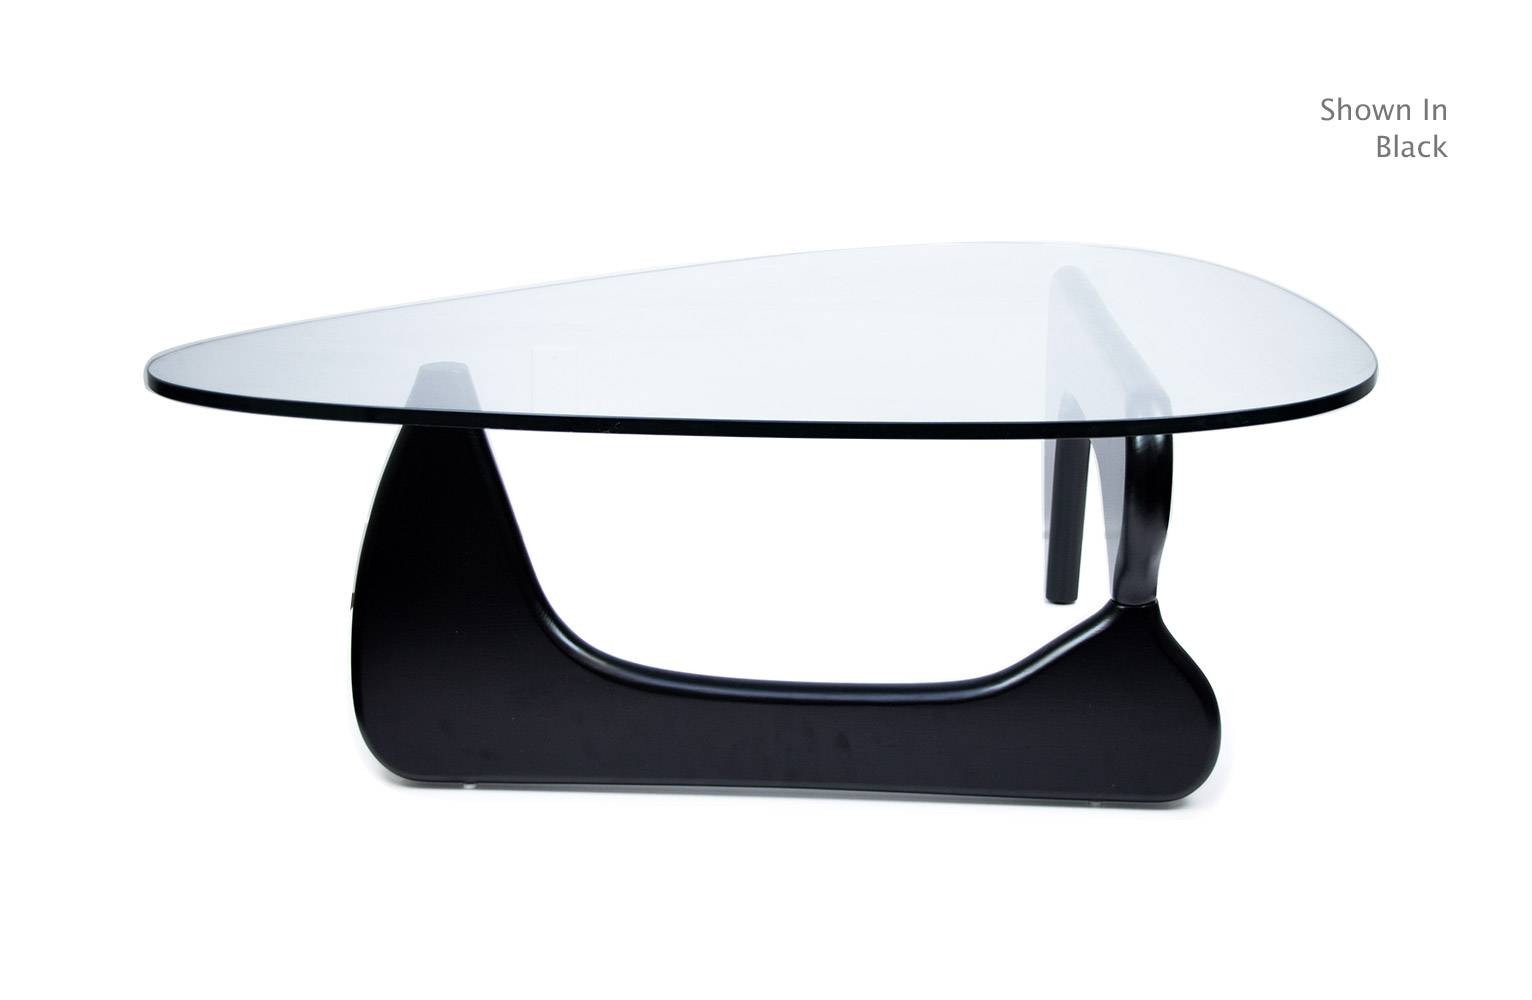 Isamu Noguchi Coffee Table: Modern Table - Serenity Living Stores within Noguchi Coffee Tables (Image 6 of 30)